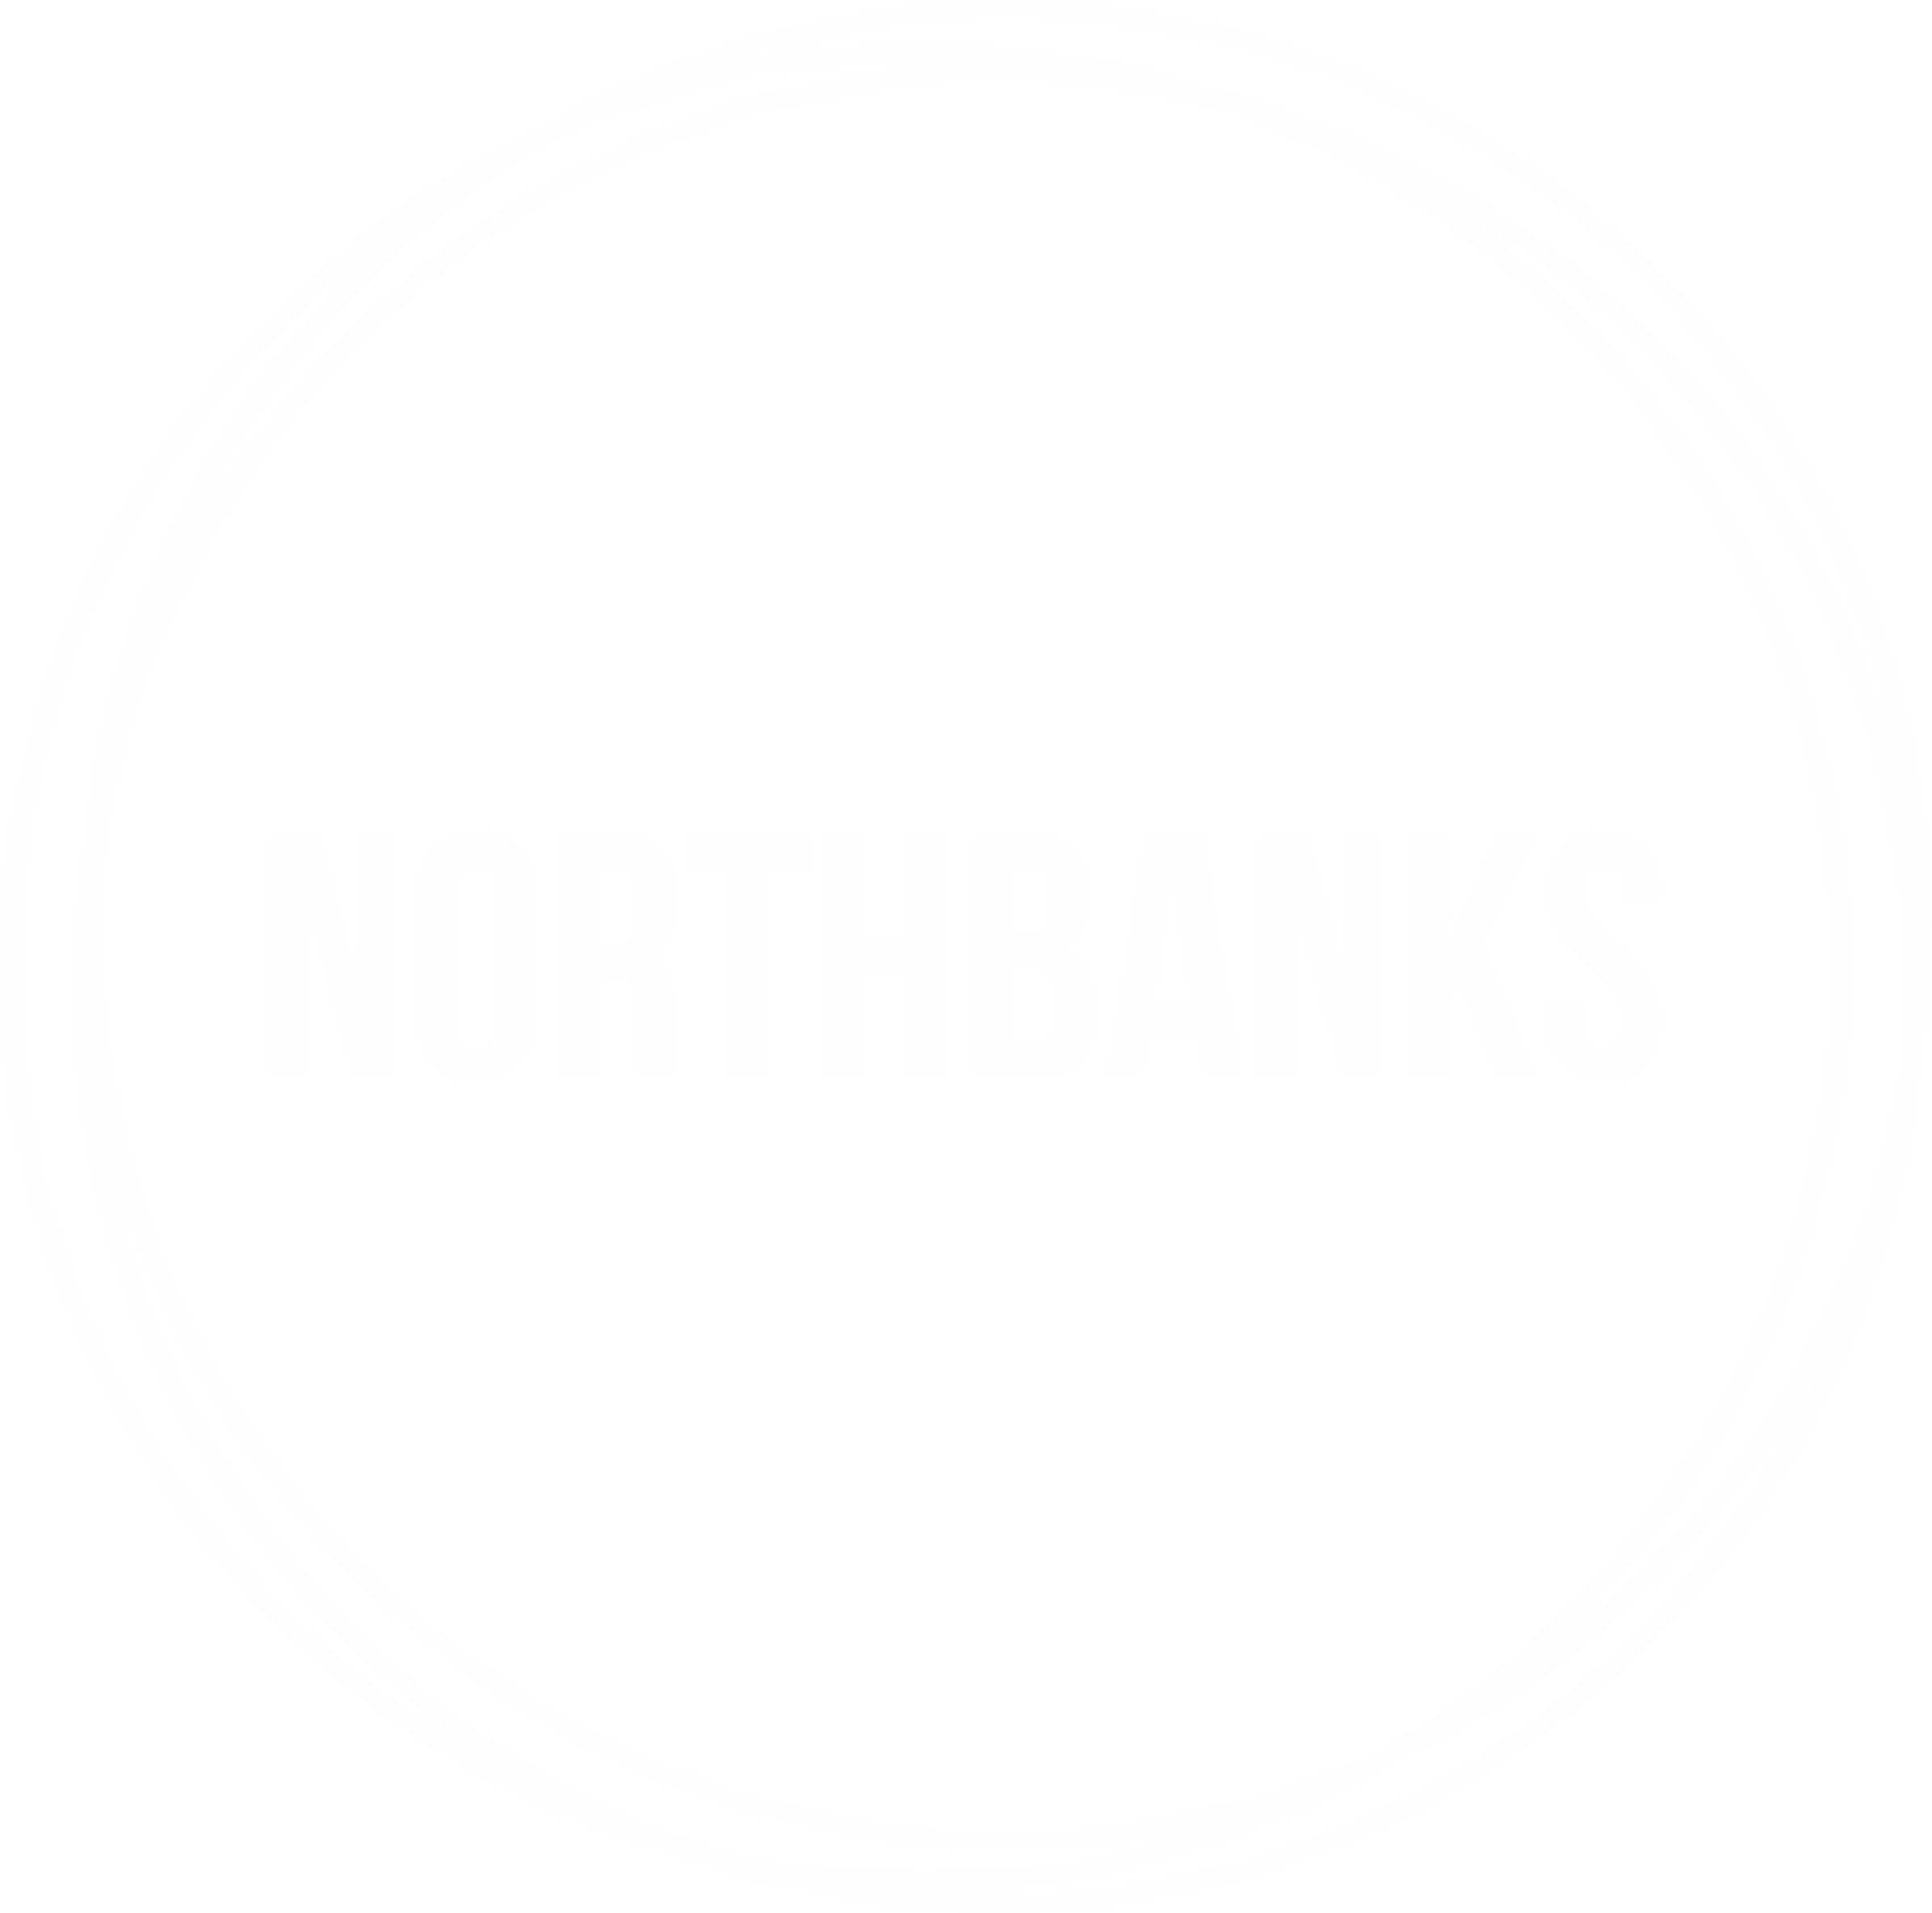 NORTHBANKS logo